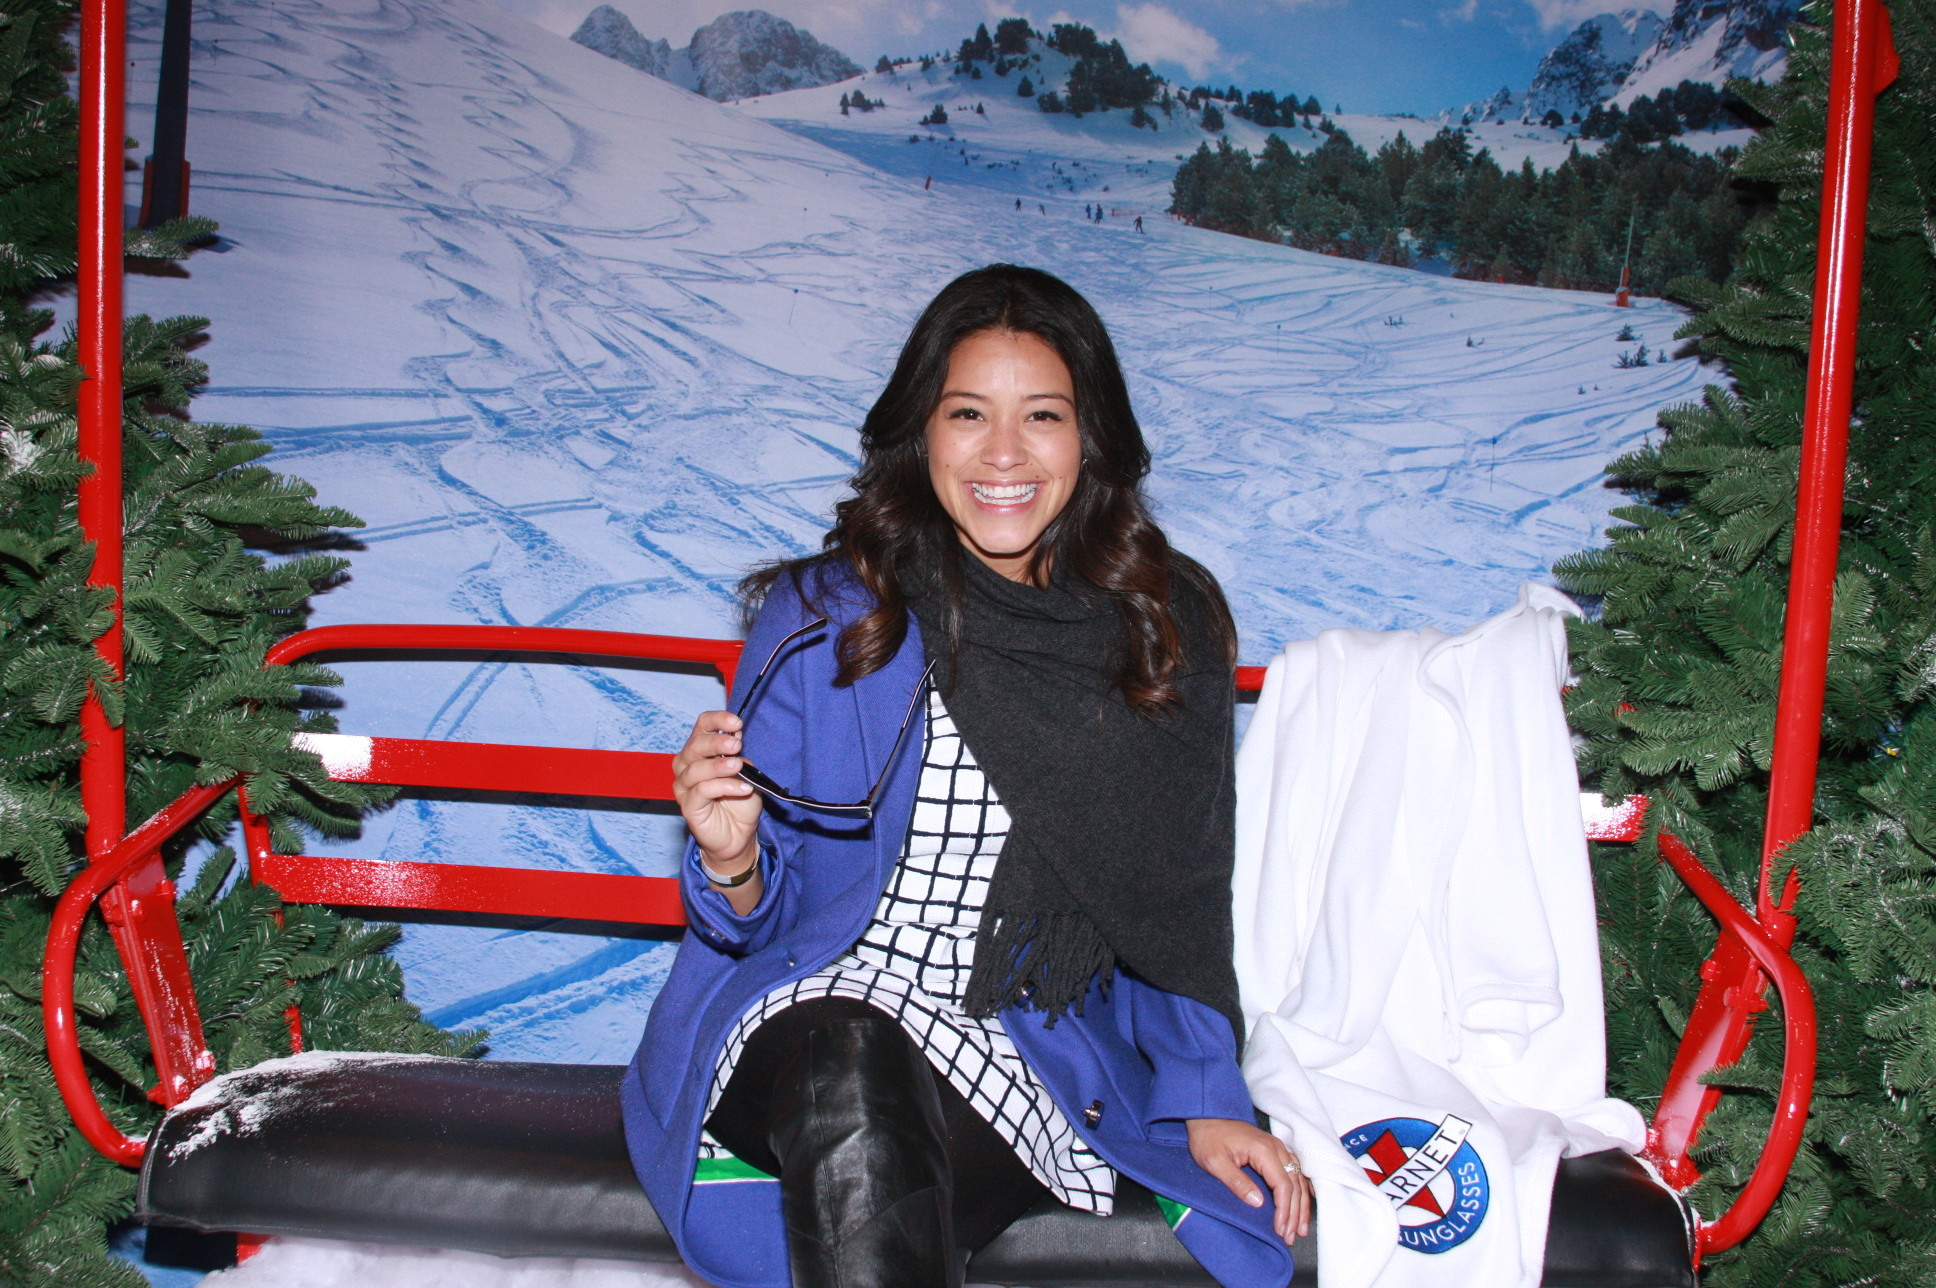 Golden Globe Winner Gina Rodriguez Preached Wisdom at Sundance, And No One Noticed